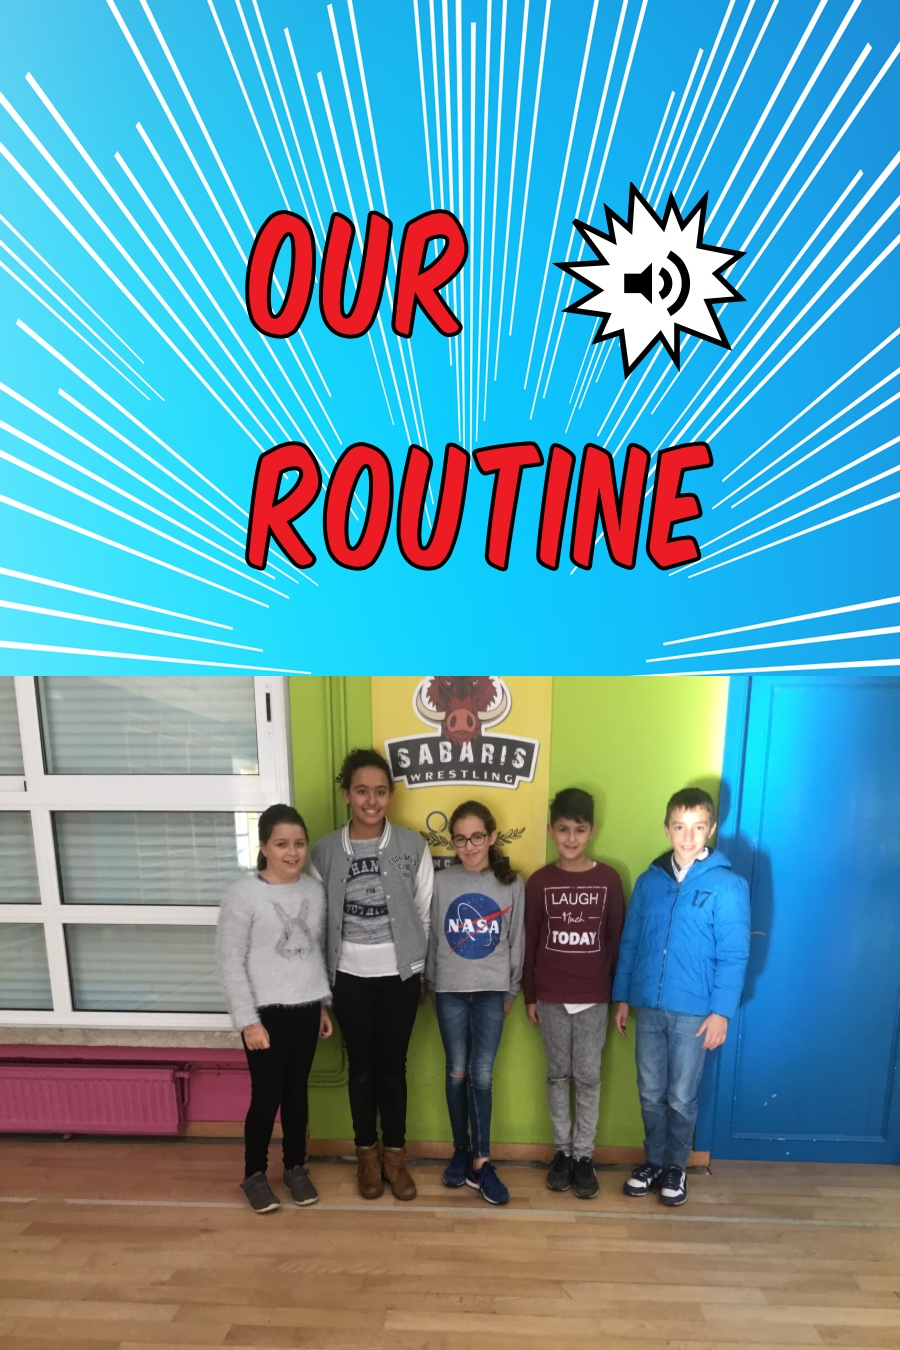 OUR Routine